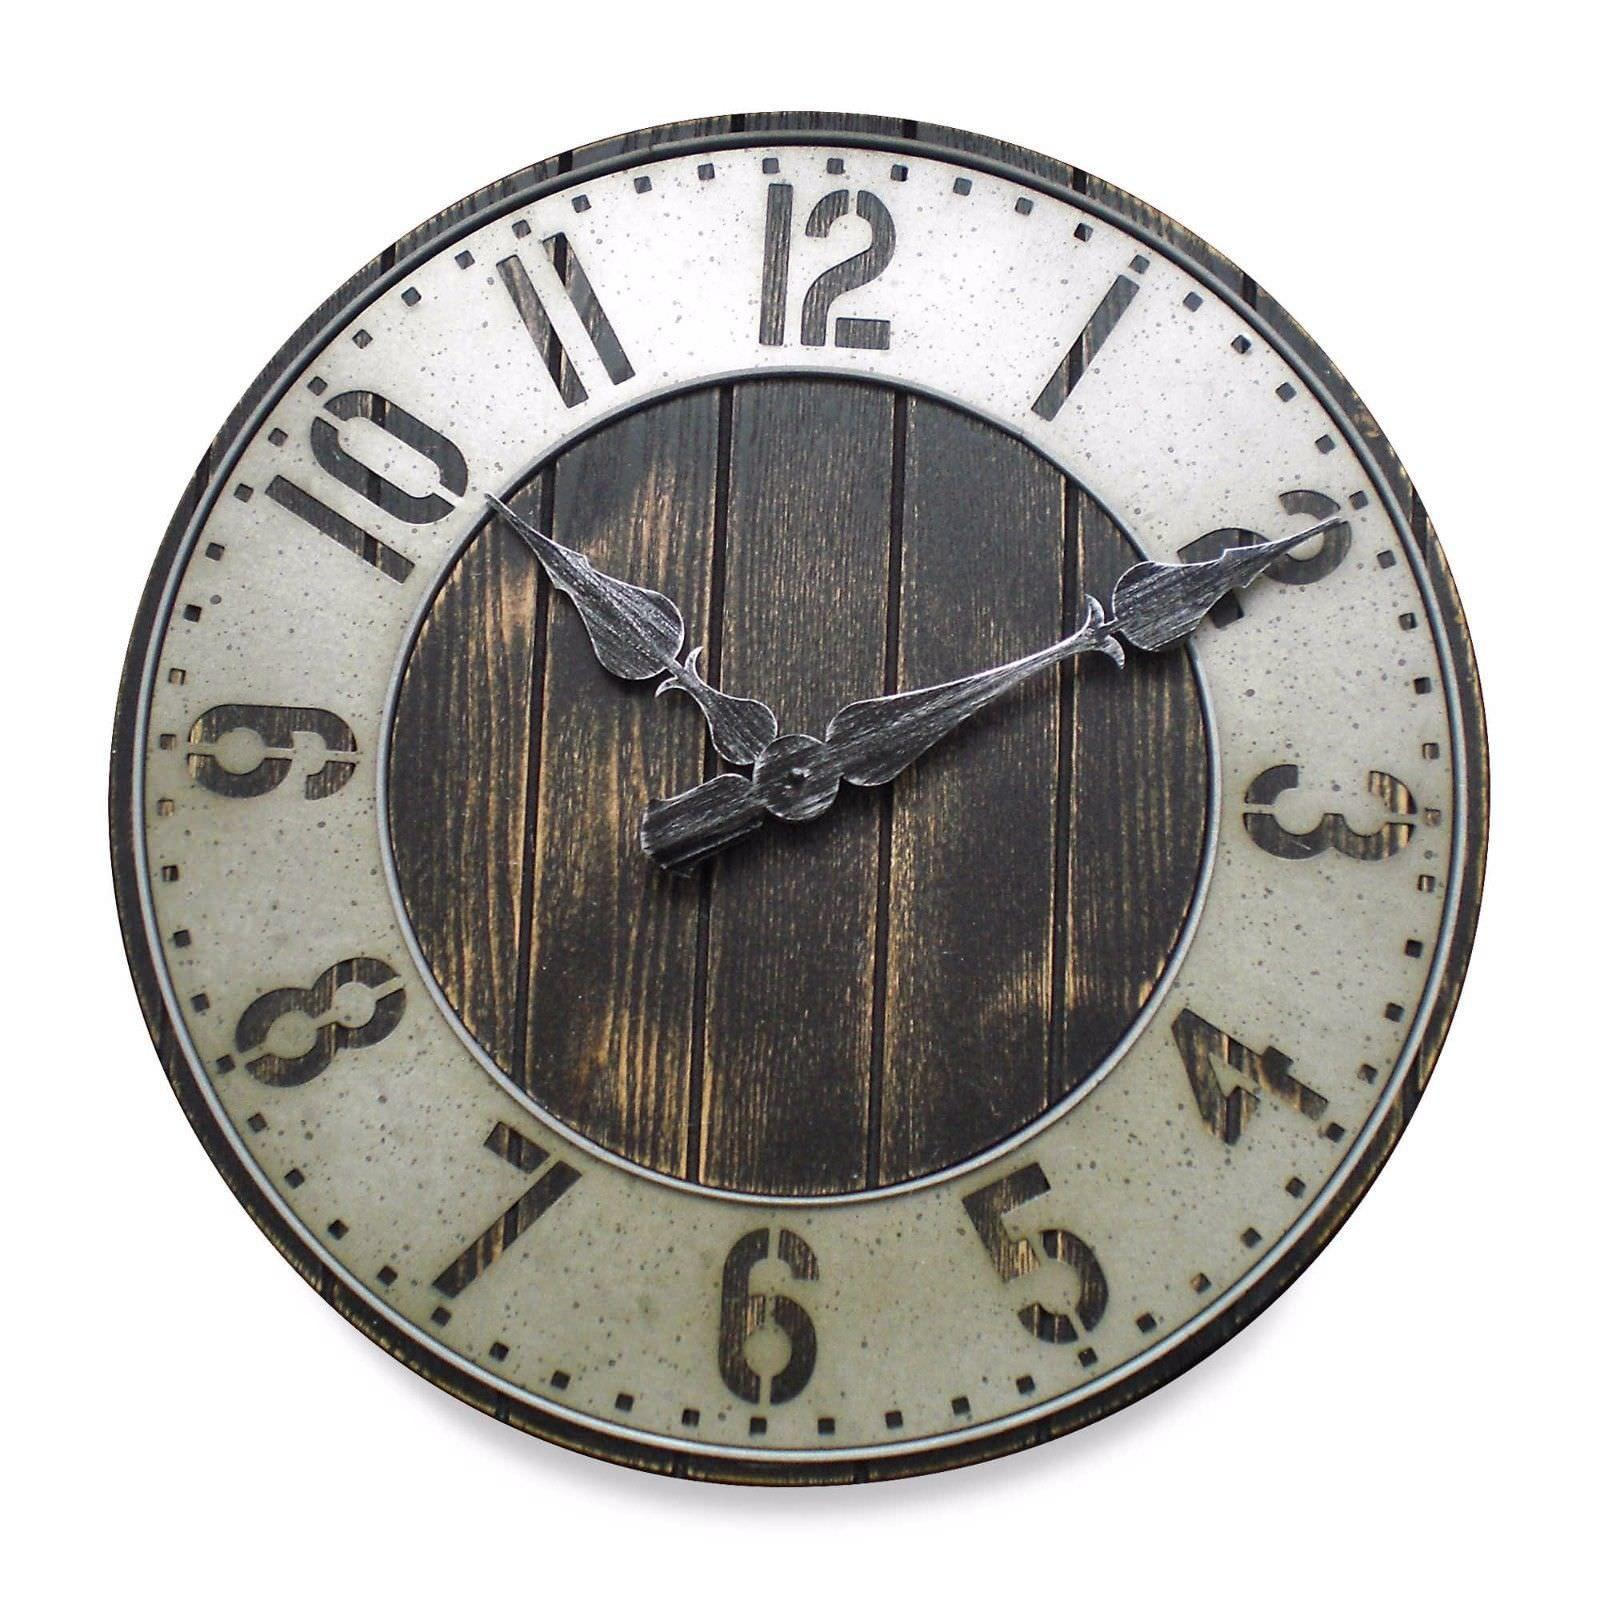 Industrial Wall Clock Designs Ideas Design Trends